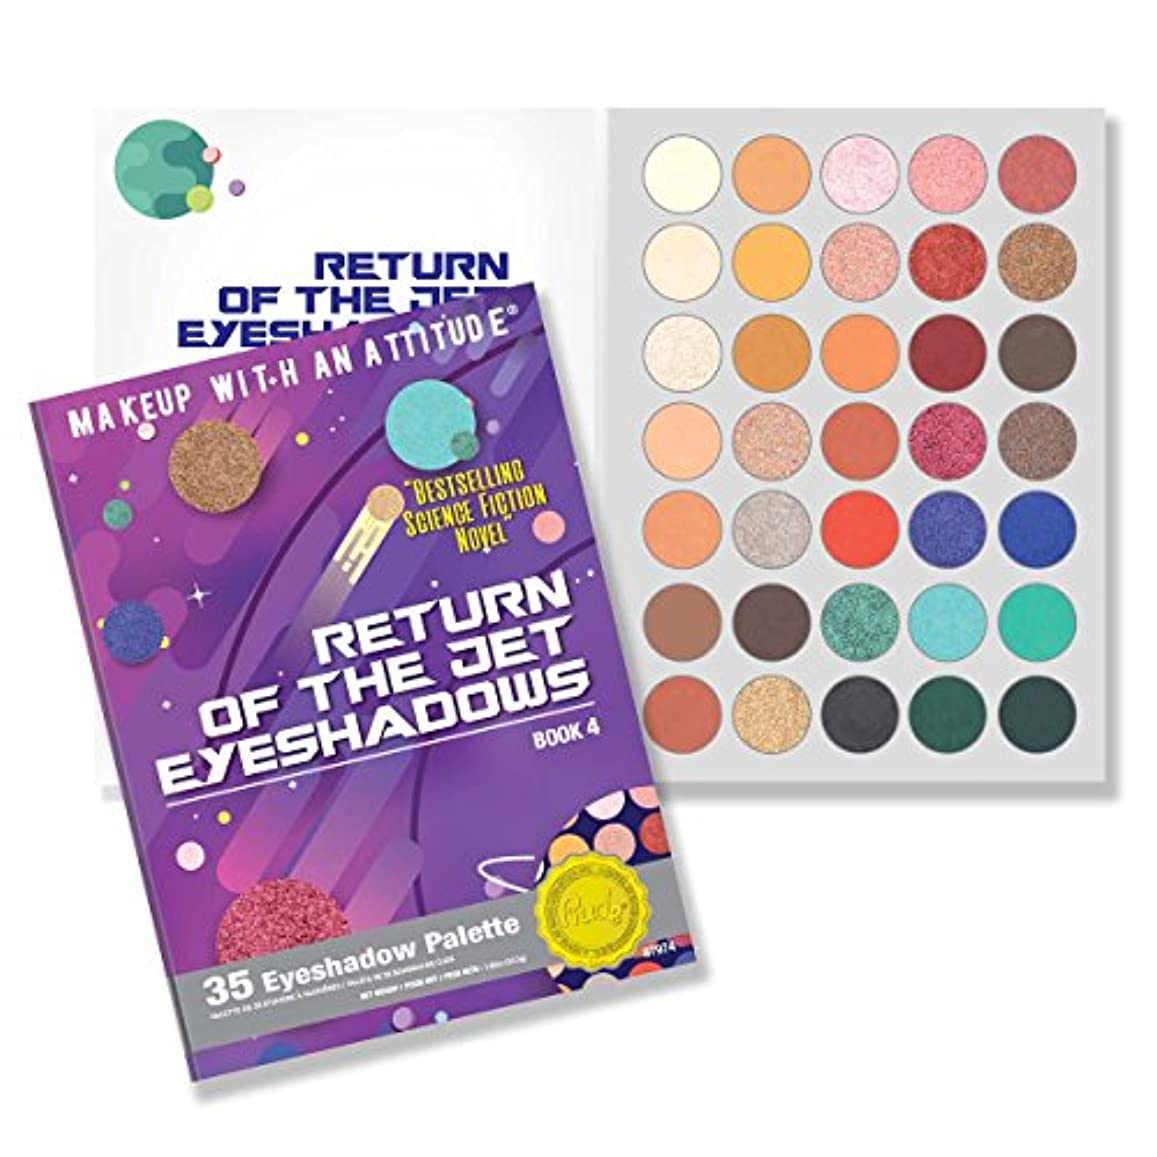 精査する地平線些細な(6 Pack) RUDE Return Of The Jet Eyeshadows 35 Eyeshadow Palette - Book 4 (並行輸入品)